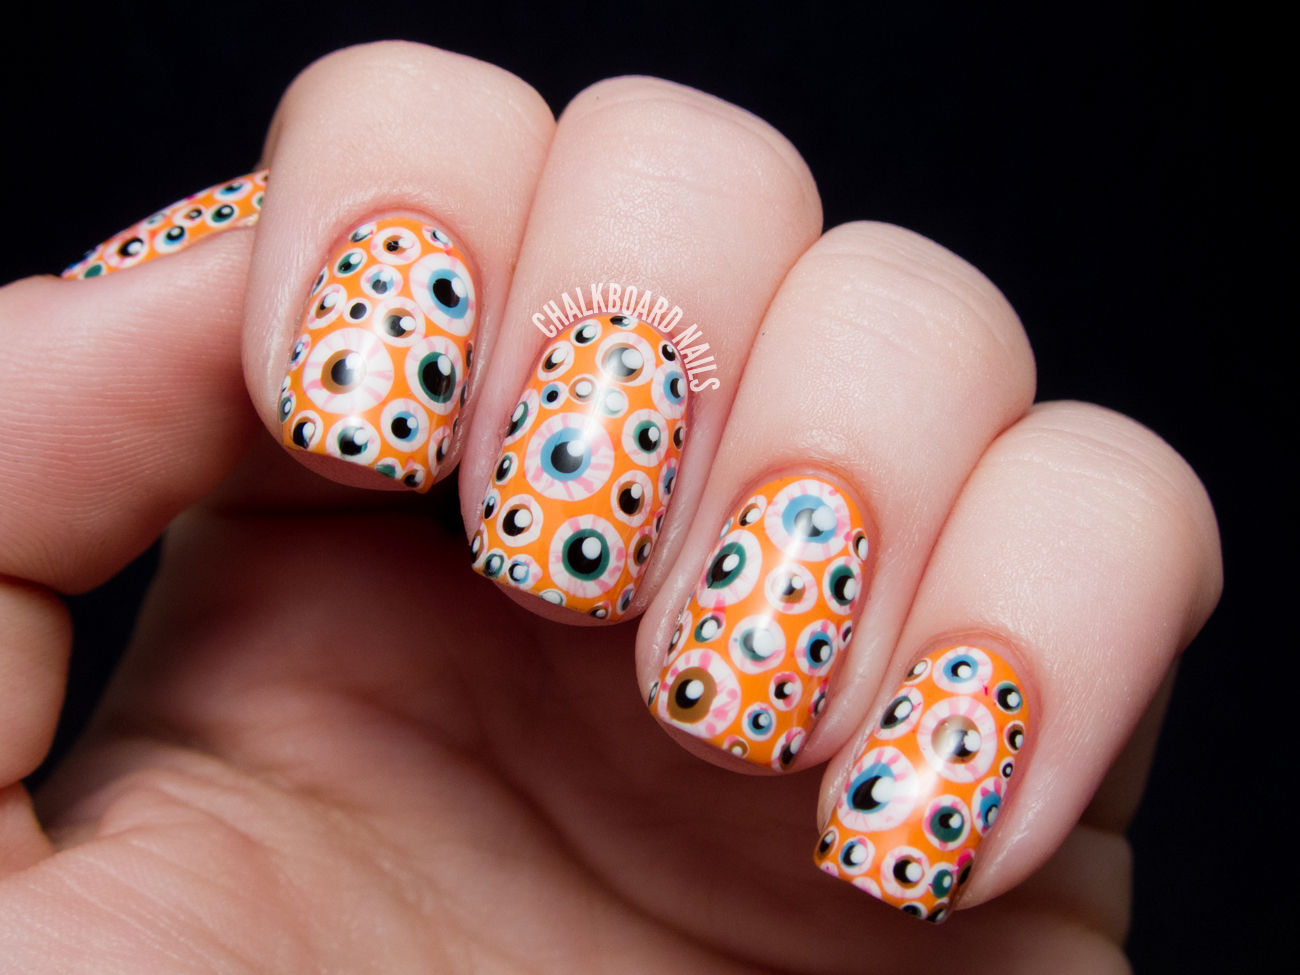 Fashion style Nails Halloween for woman